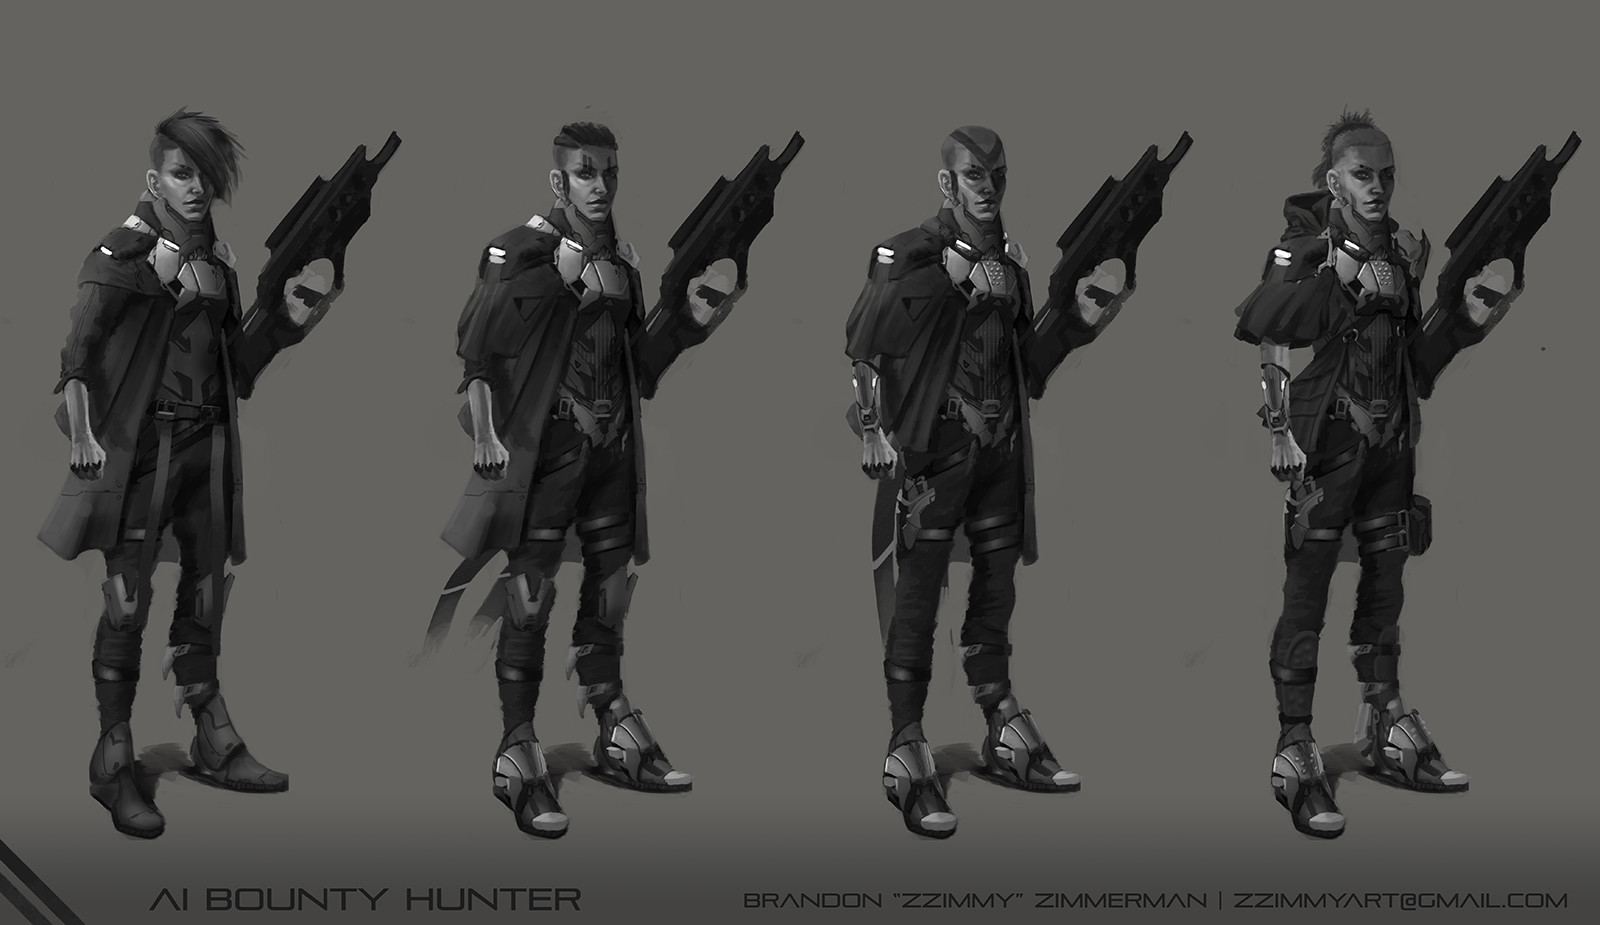 Brandon zimmerman brandonzimmerman iterations bountyhunter